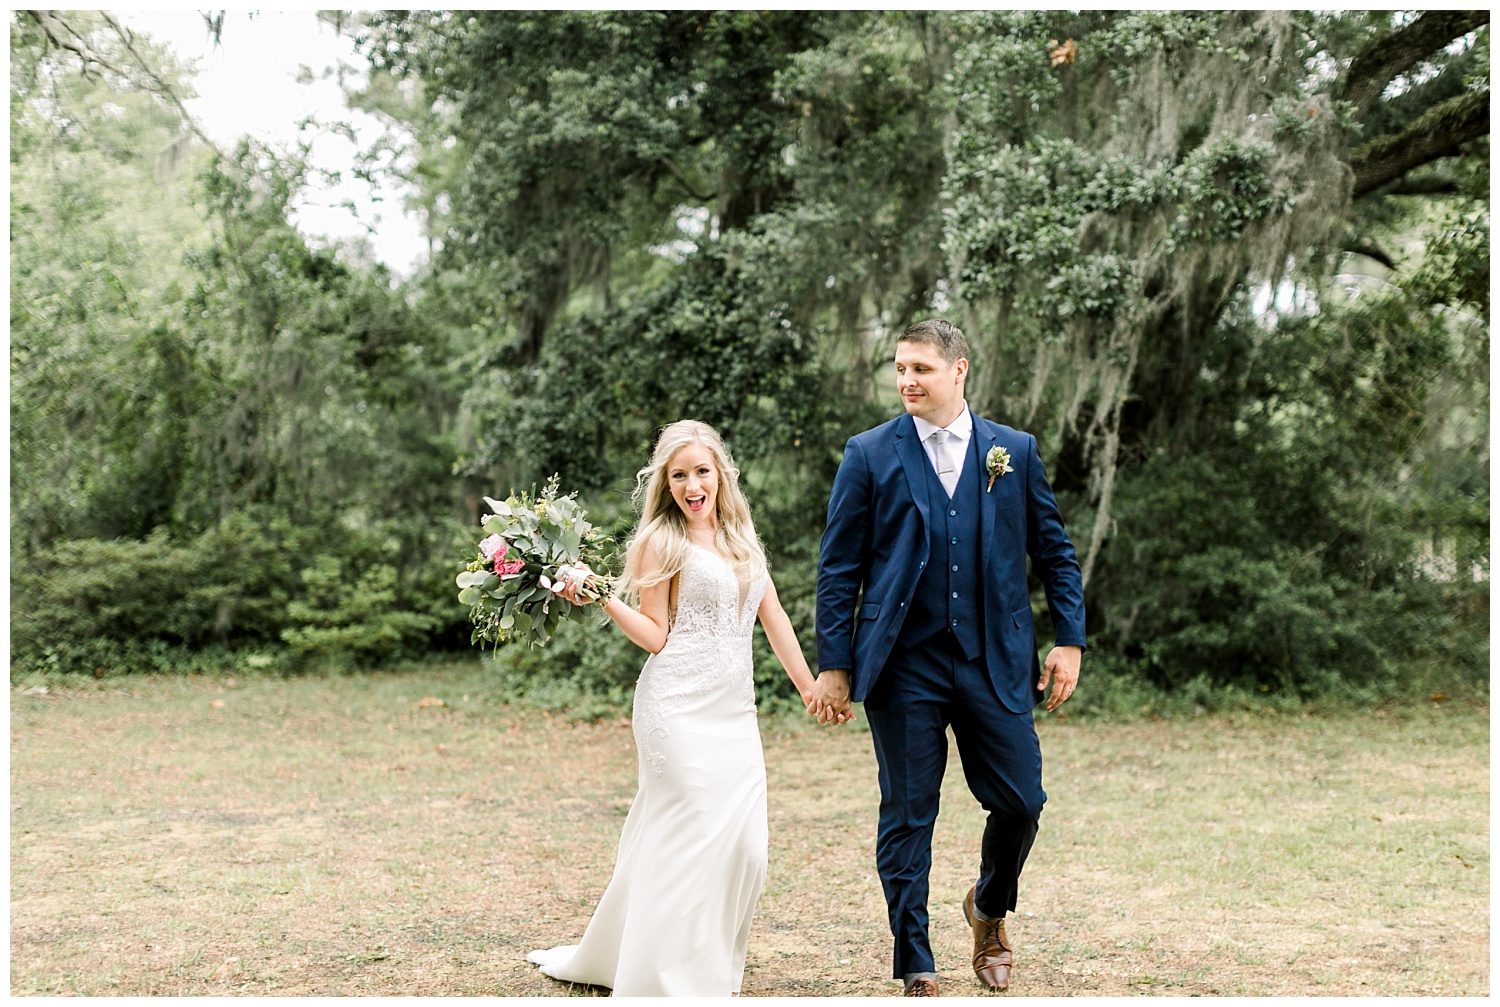 Wrightsville Manor Wedding Wilmington NC_Erin L. Taylor Photography_0043.jpg